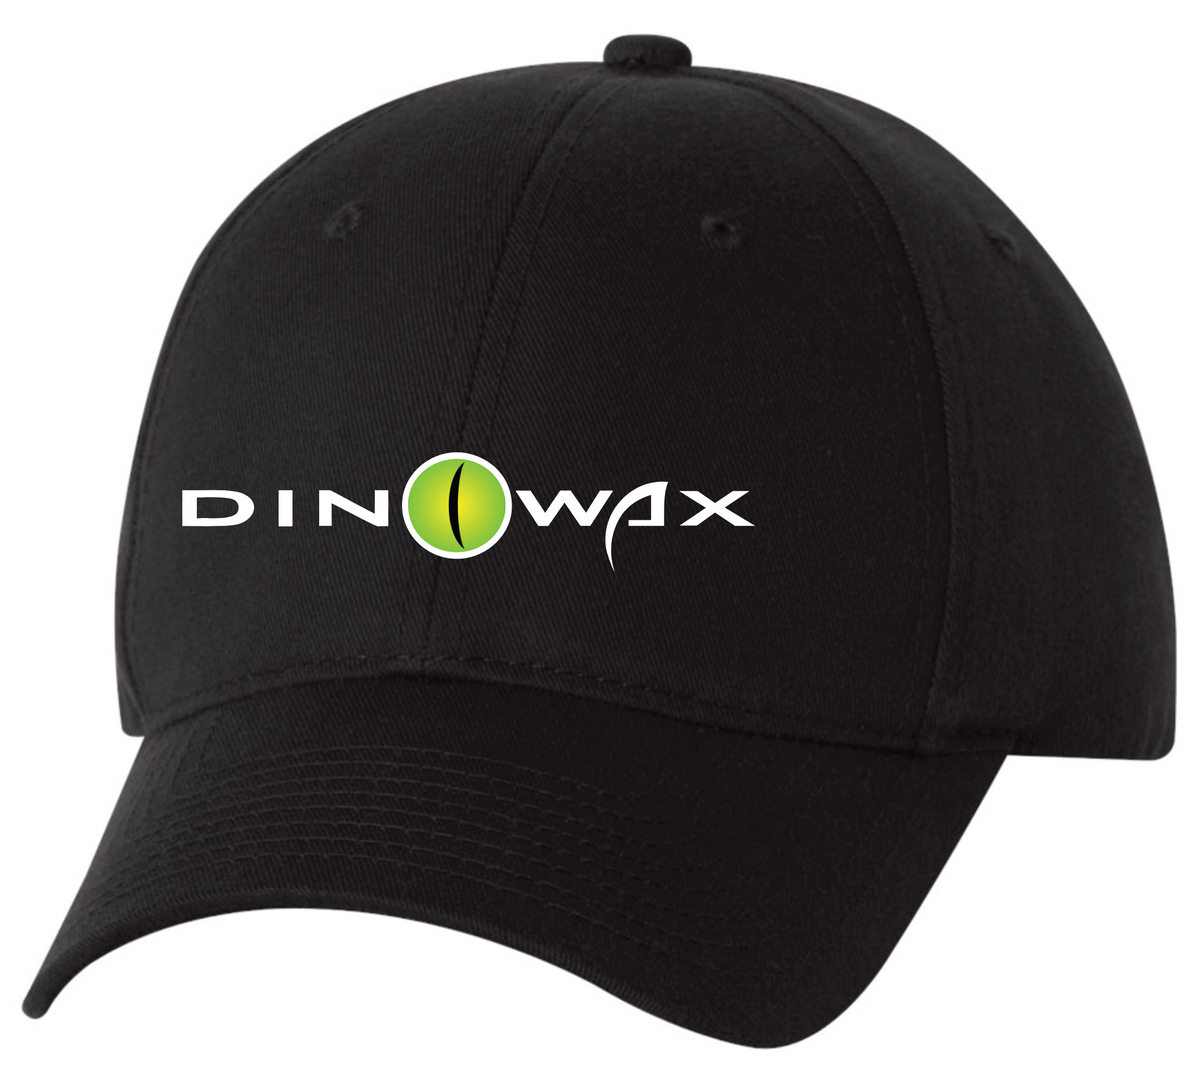 Dinowax Embroidered Adjustable Low-Rise Cap